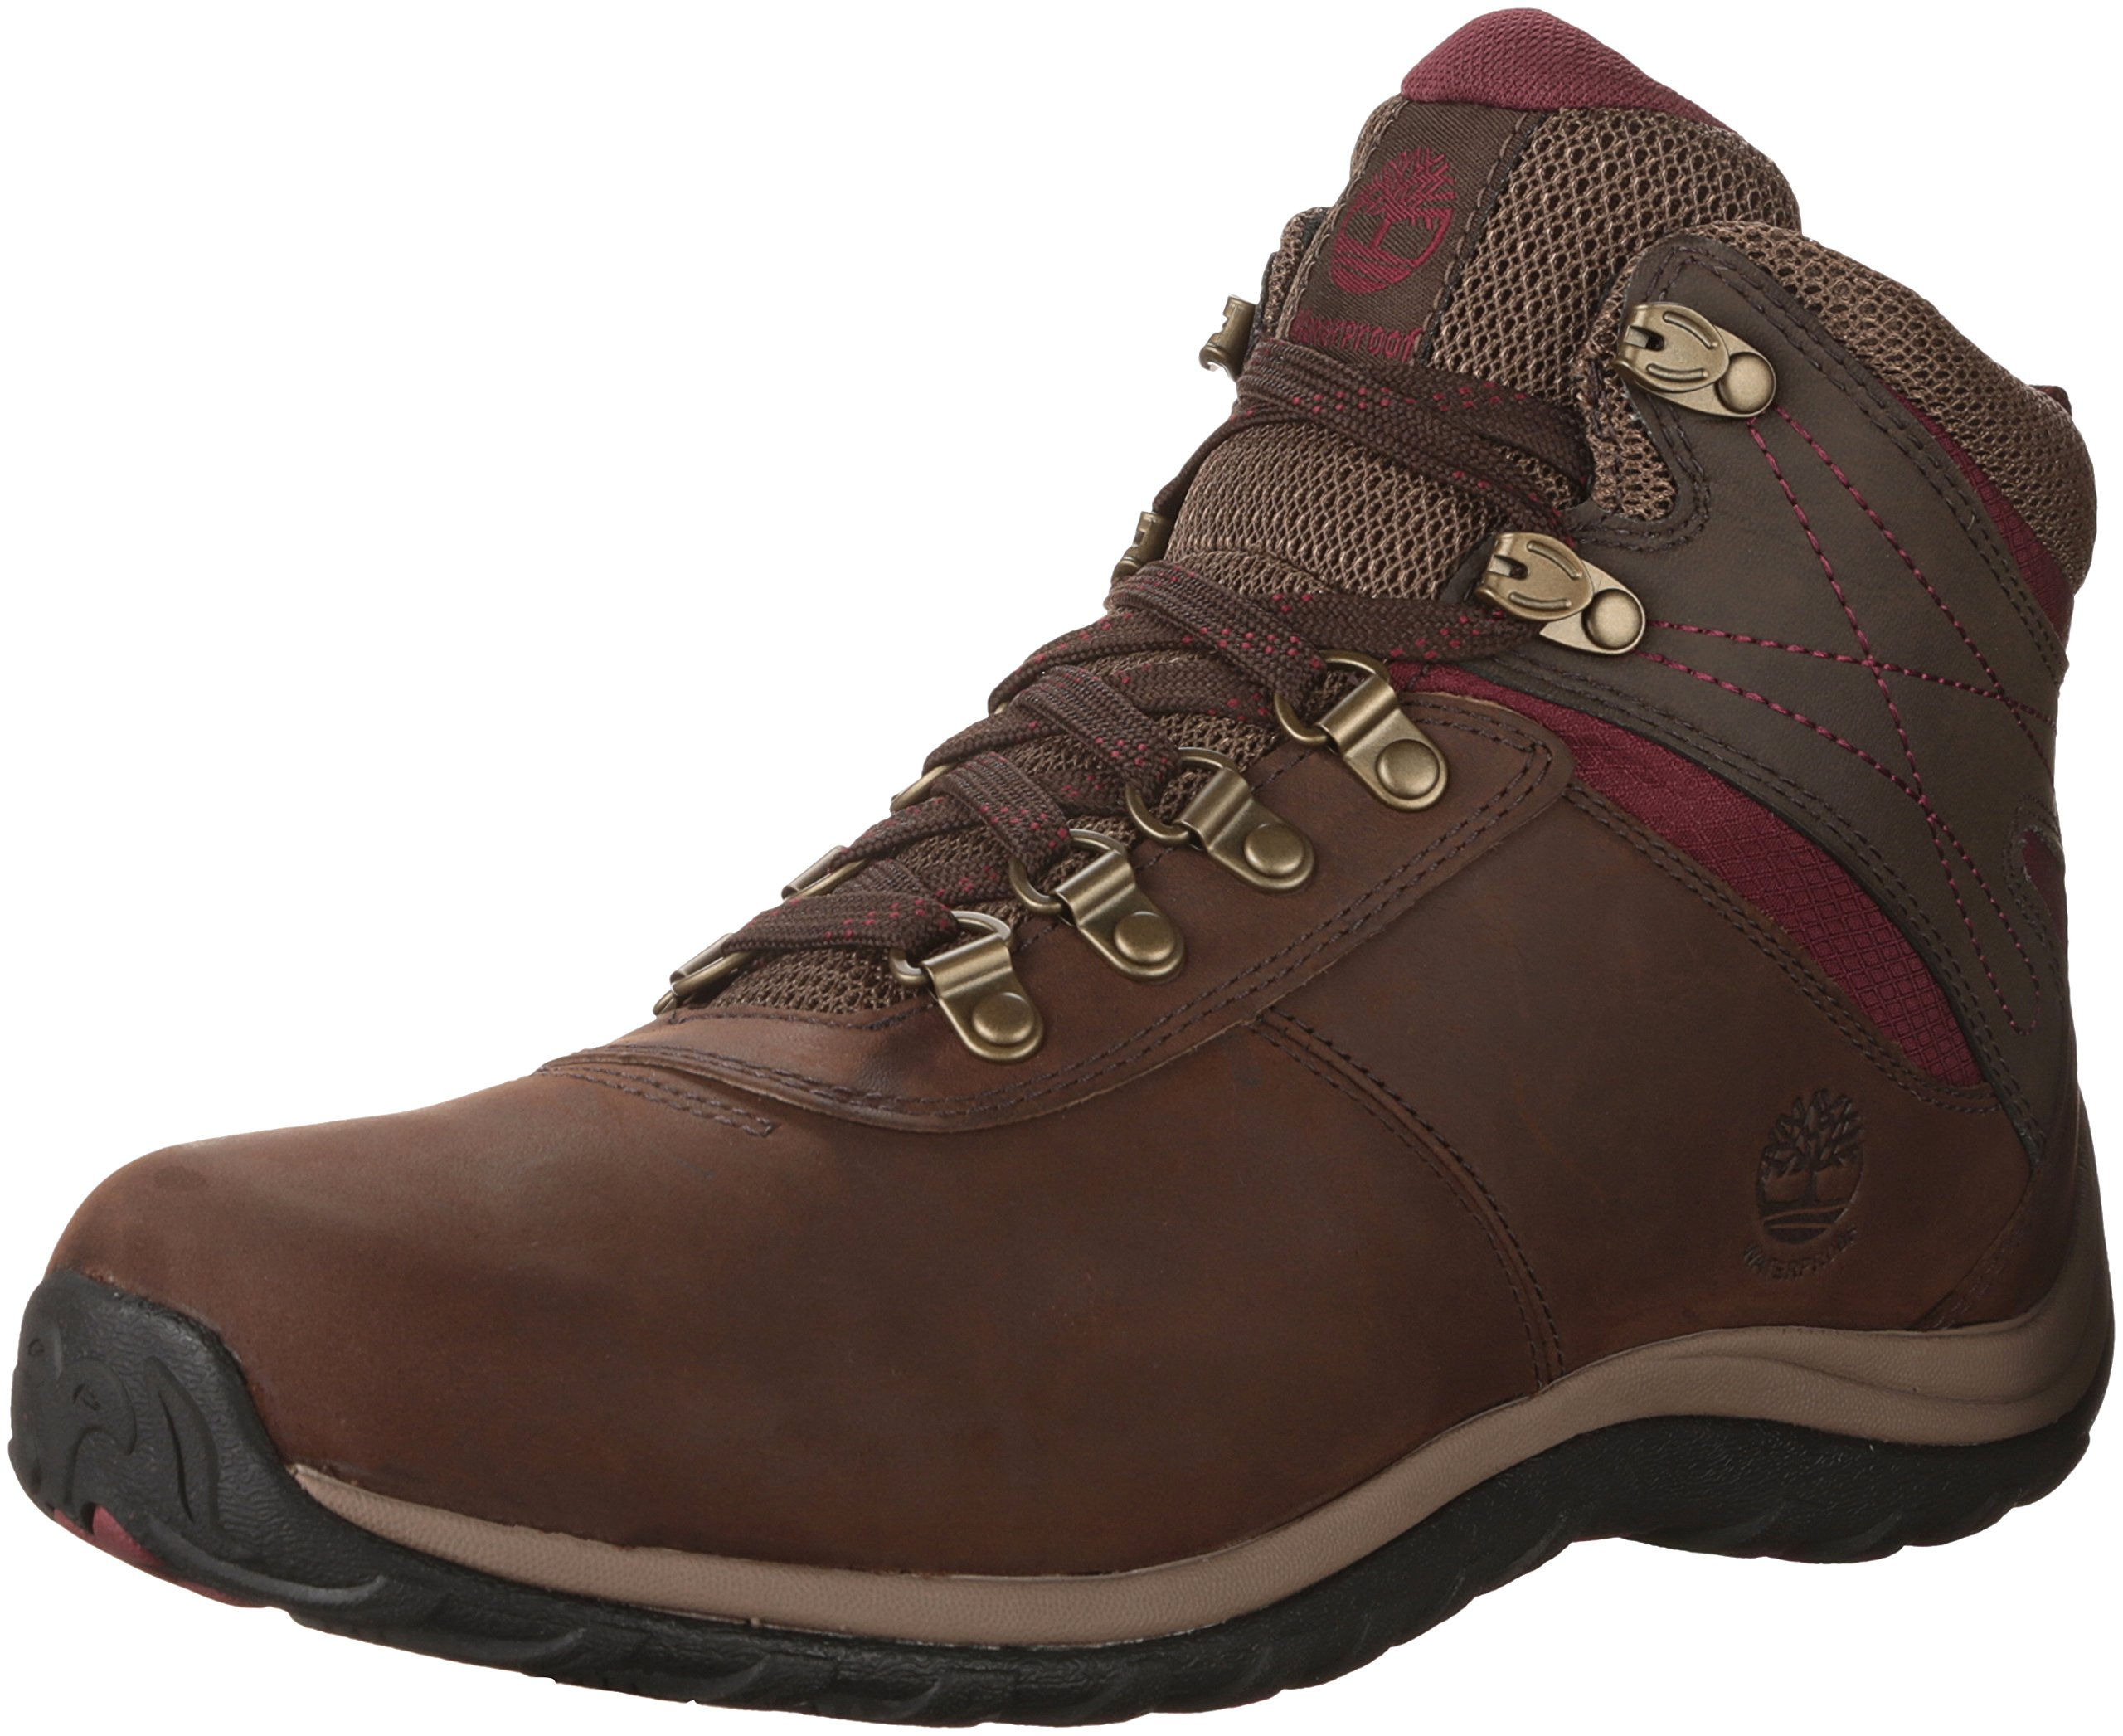 Timberland Women's Norwood Mid Waterproof Hiking Boot, Dark Brown, 8 Medium US by Timberland